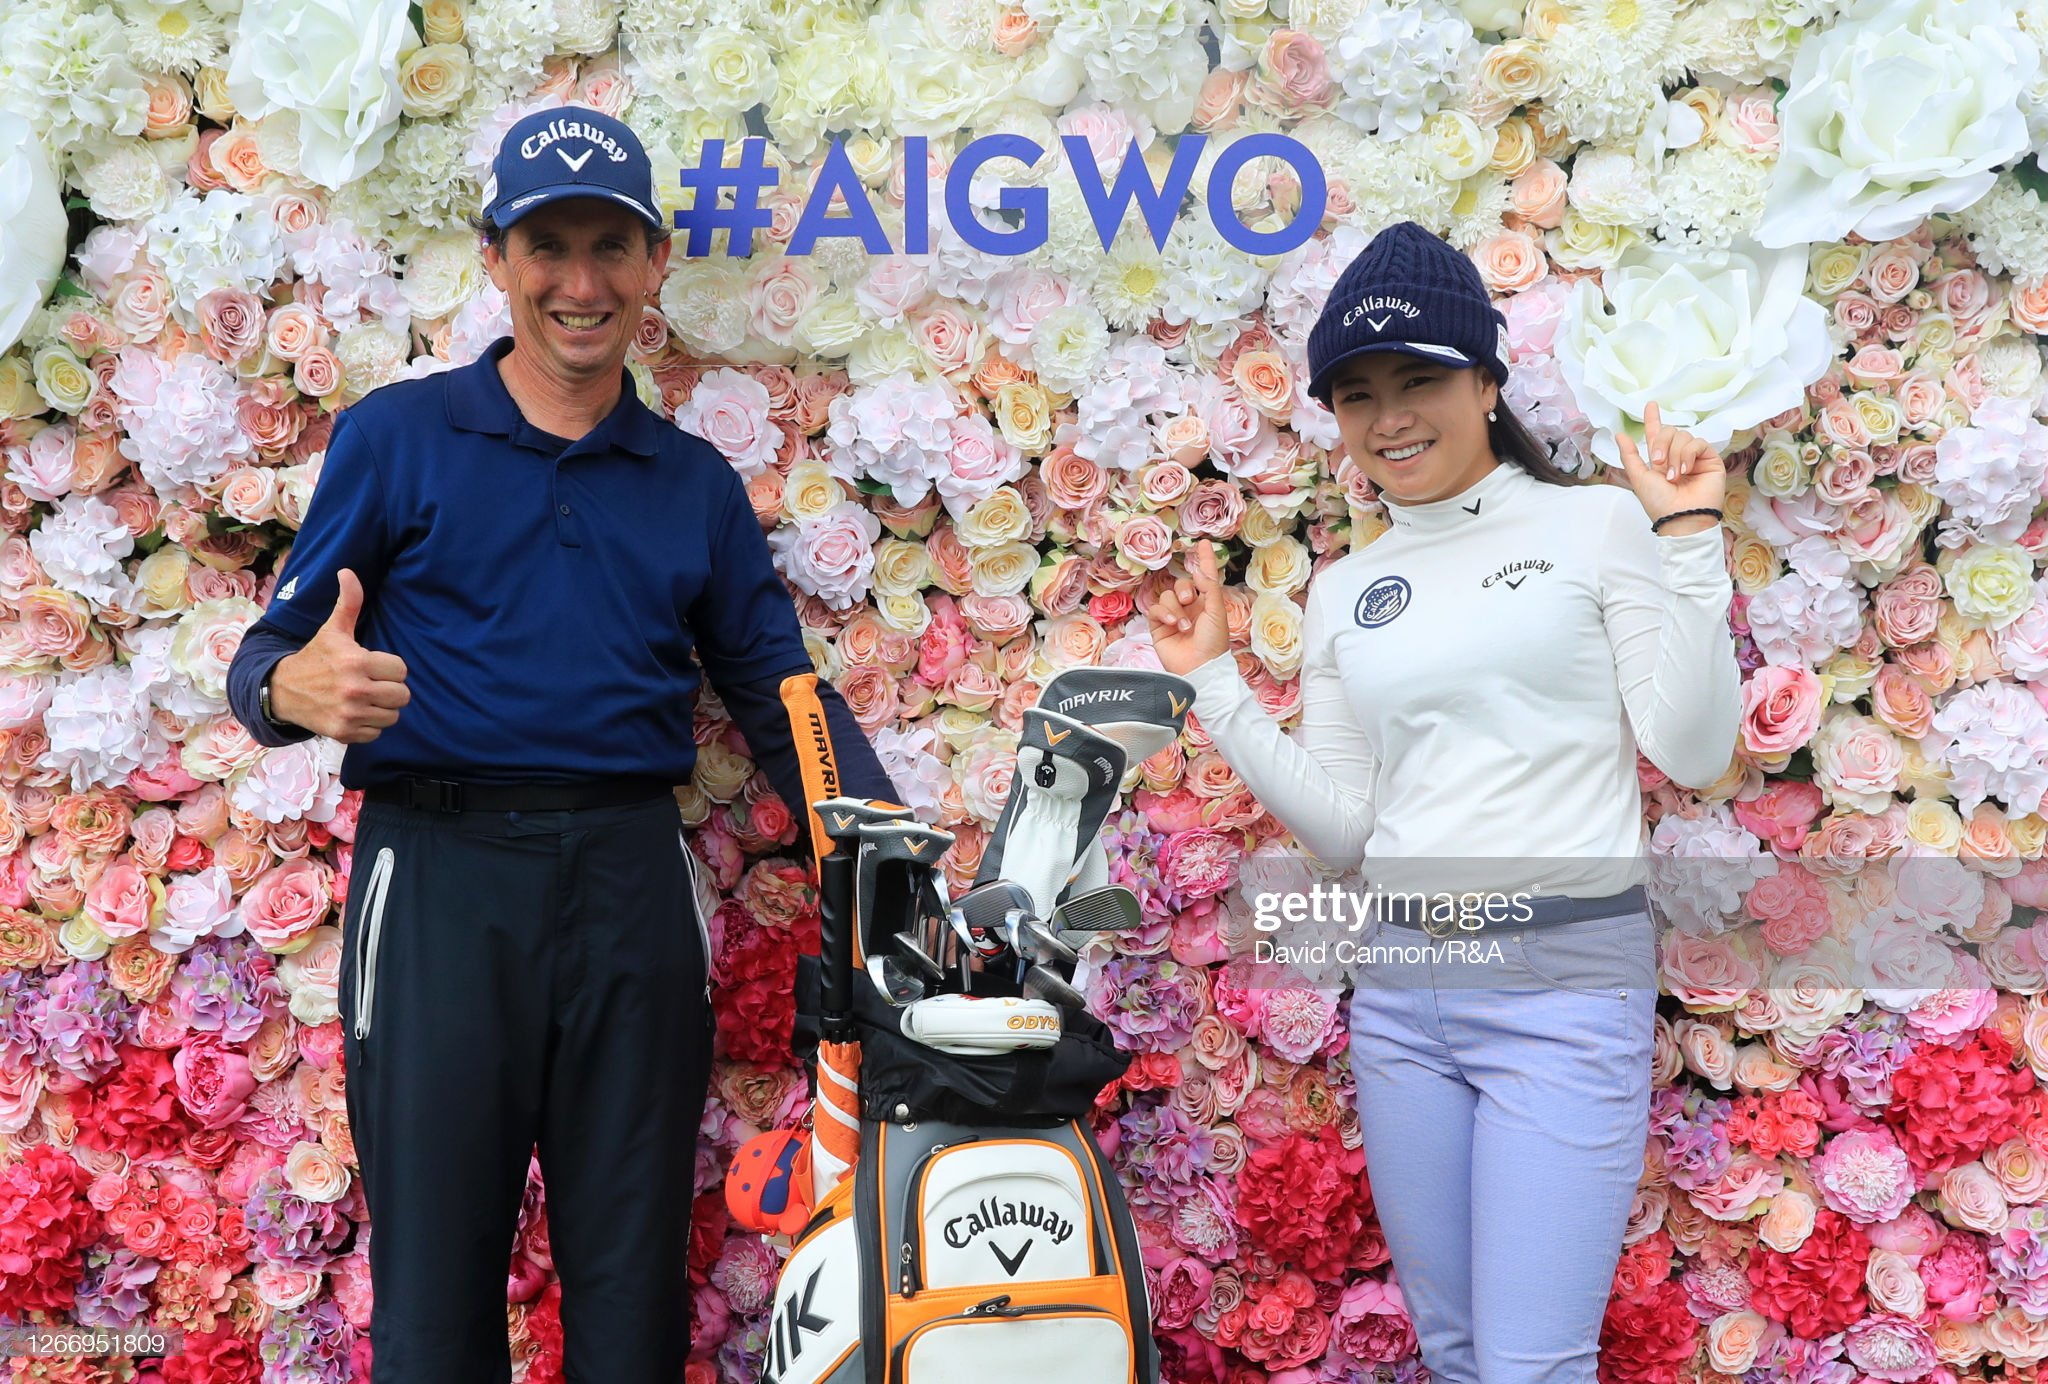 https://media.gettyimages.com/photos/yuikawamoto-of-japan-poses-for-a-photo-with-her-caddie-colin-cann-of-picture-id1266951809?s=2048x2048